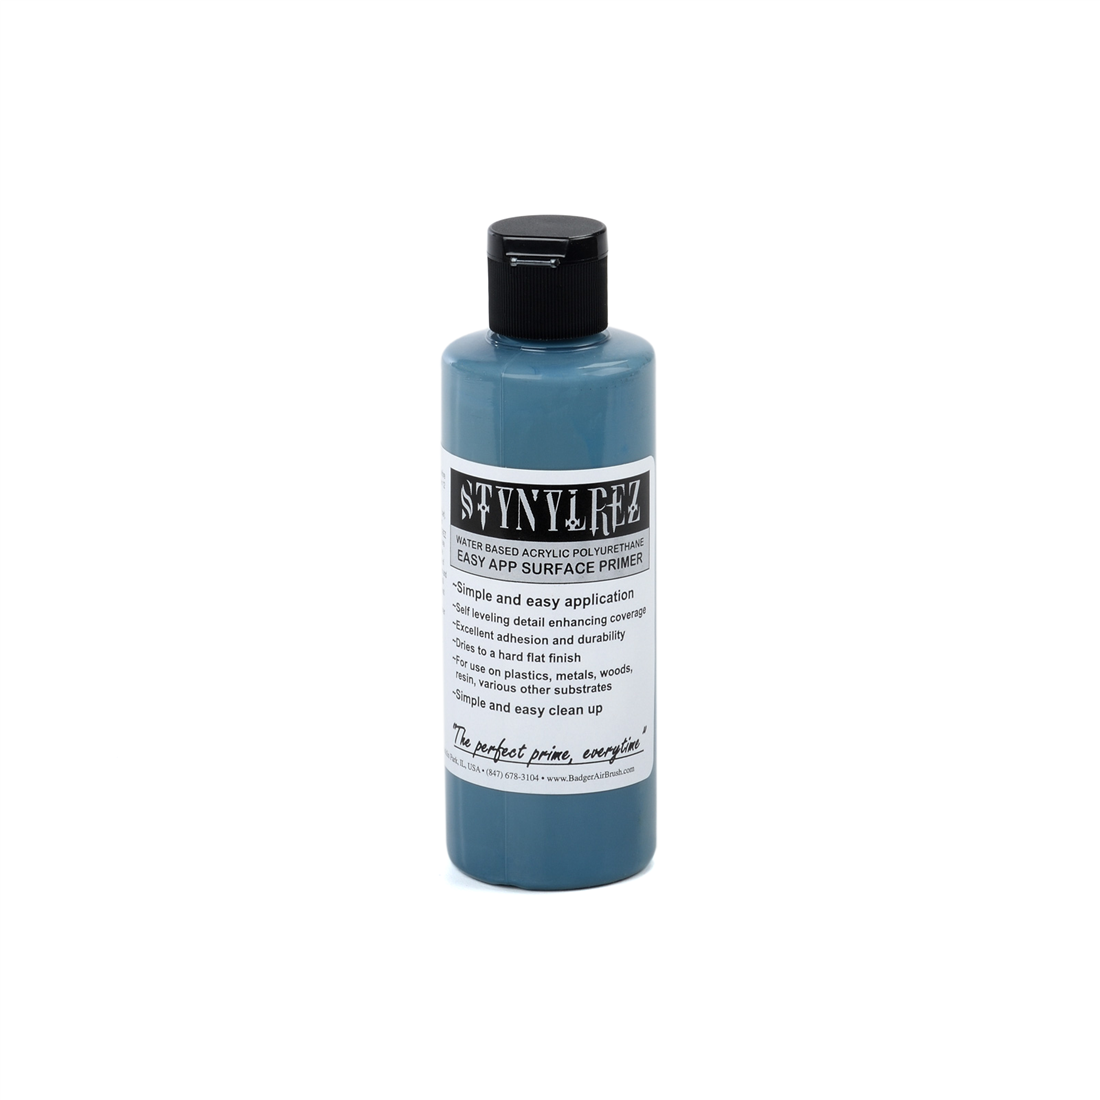 411 Badger Stynylrez ocean blu 120 ml.